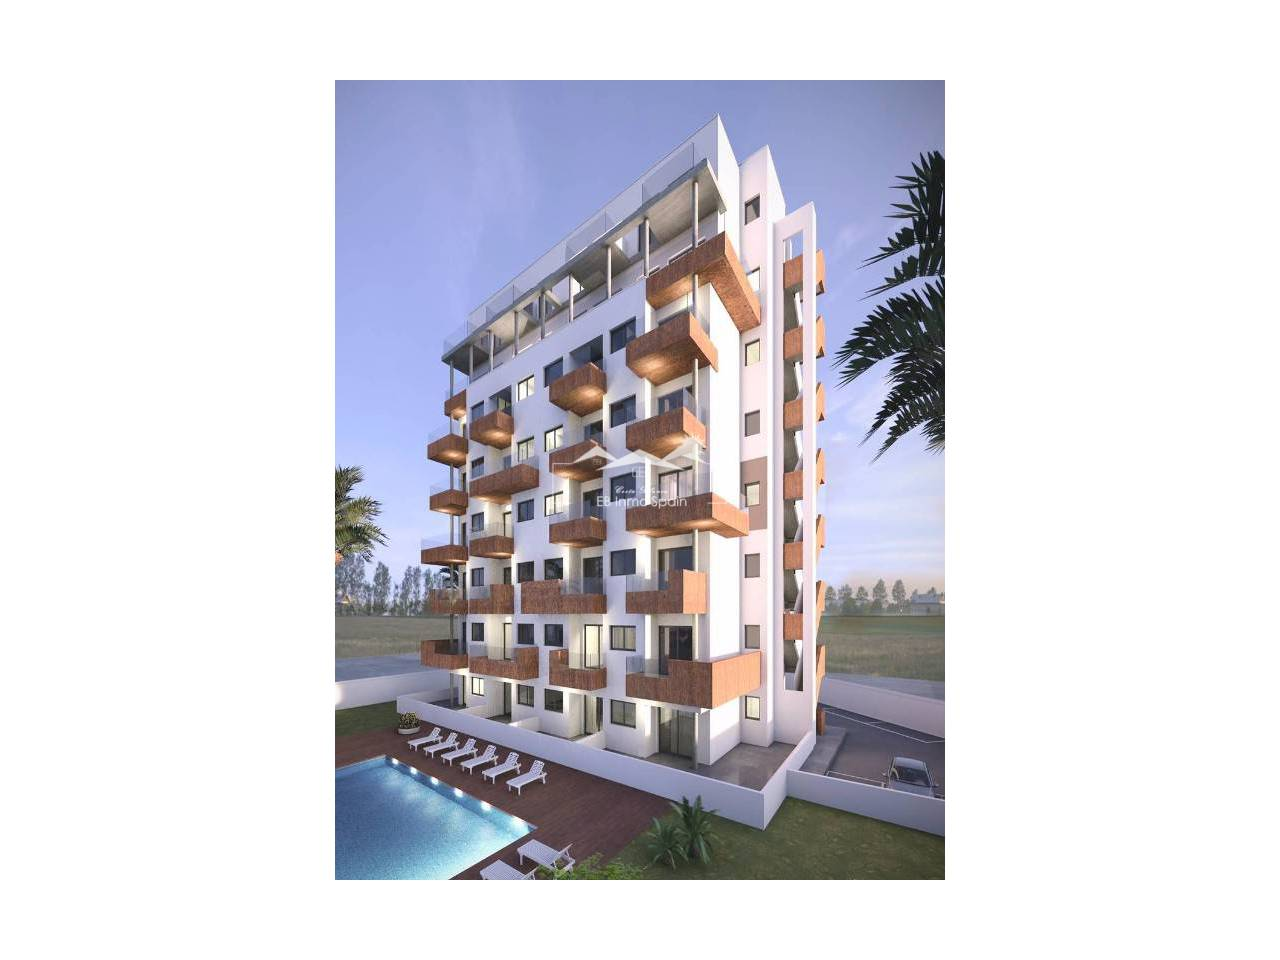 Obra Nueva - Apartamento - Guardamar del Segura - SUP 7 - Sports Port